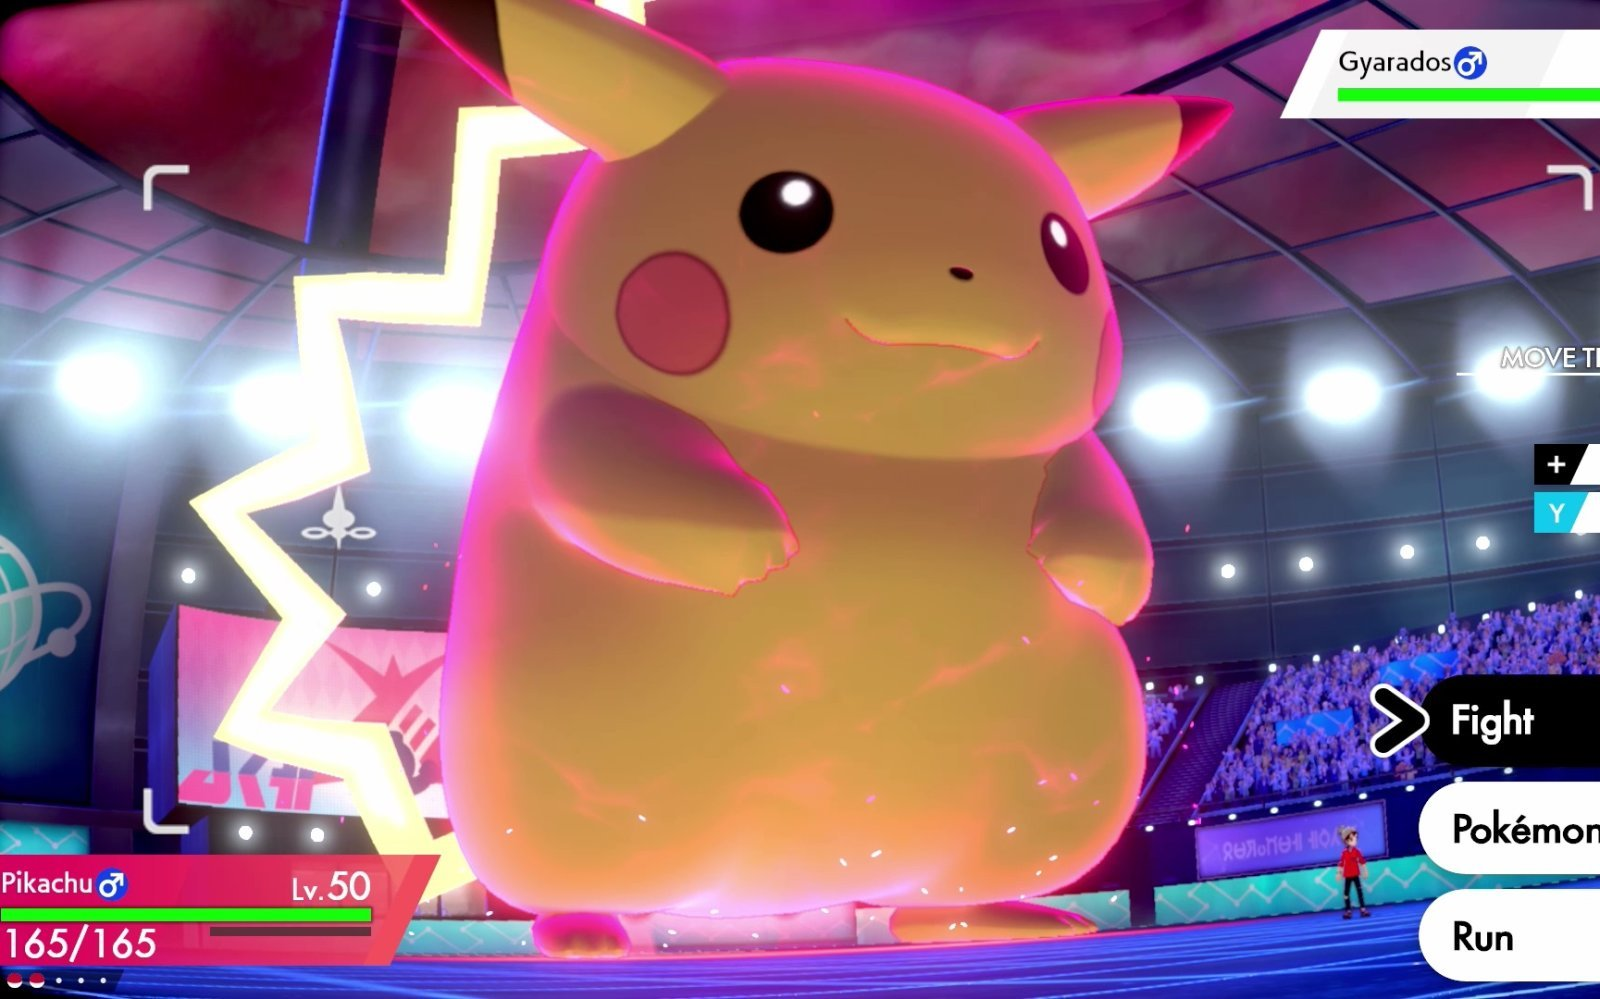 Game Freak set out to make the 'ultimate, strongest, and best' Pokemon game with Pokemon Sword & Shield, new Gigantamax footage shared